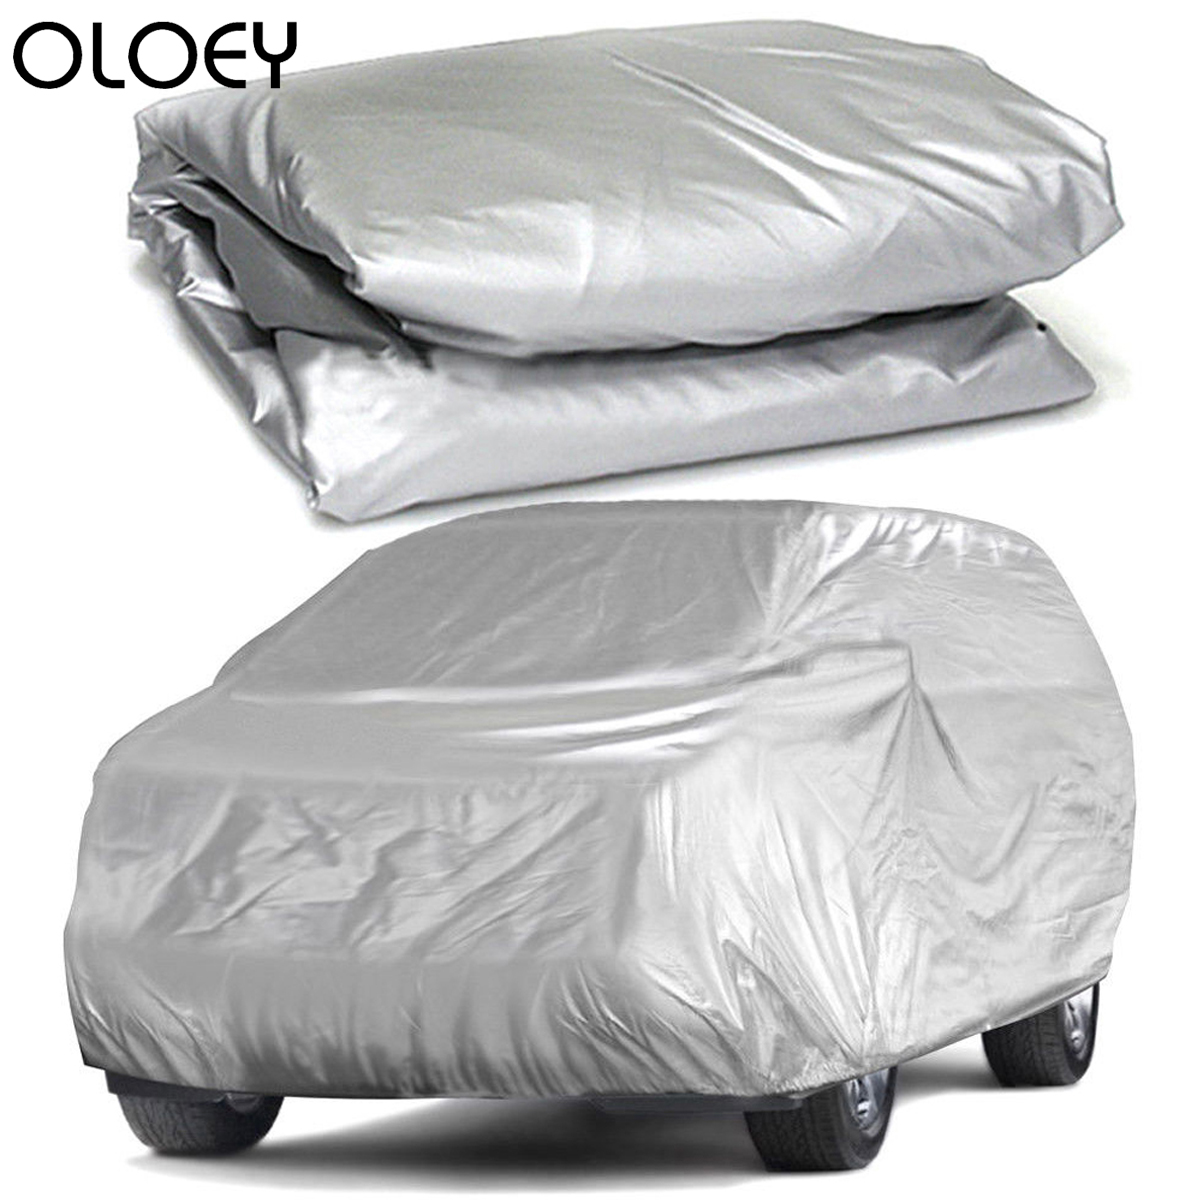 2019 Car Covers waterproof Universal Car Body Cover Sun-proof Dust-proof Car Protective Cover automotive exterior accessories